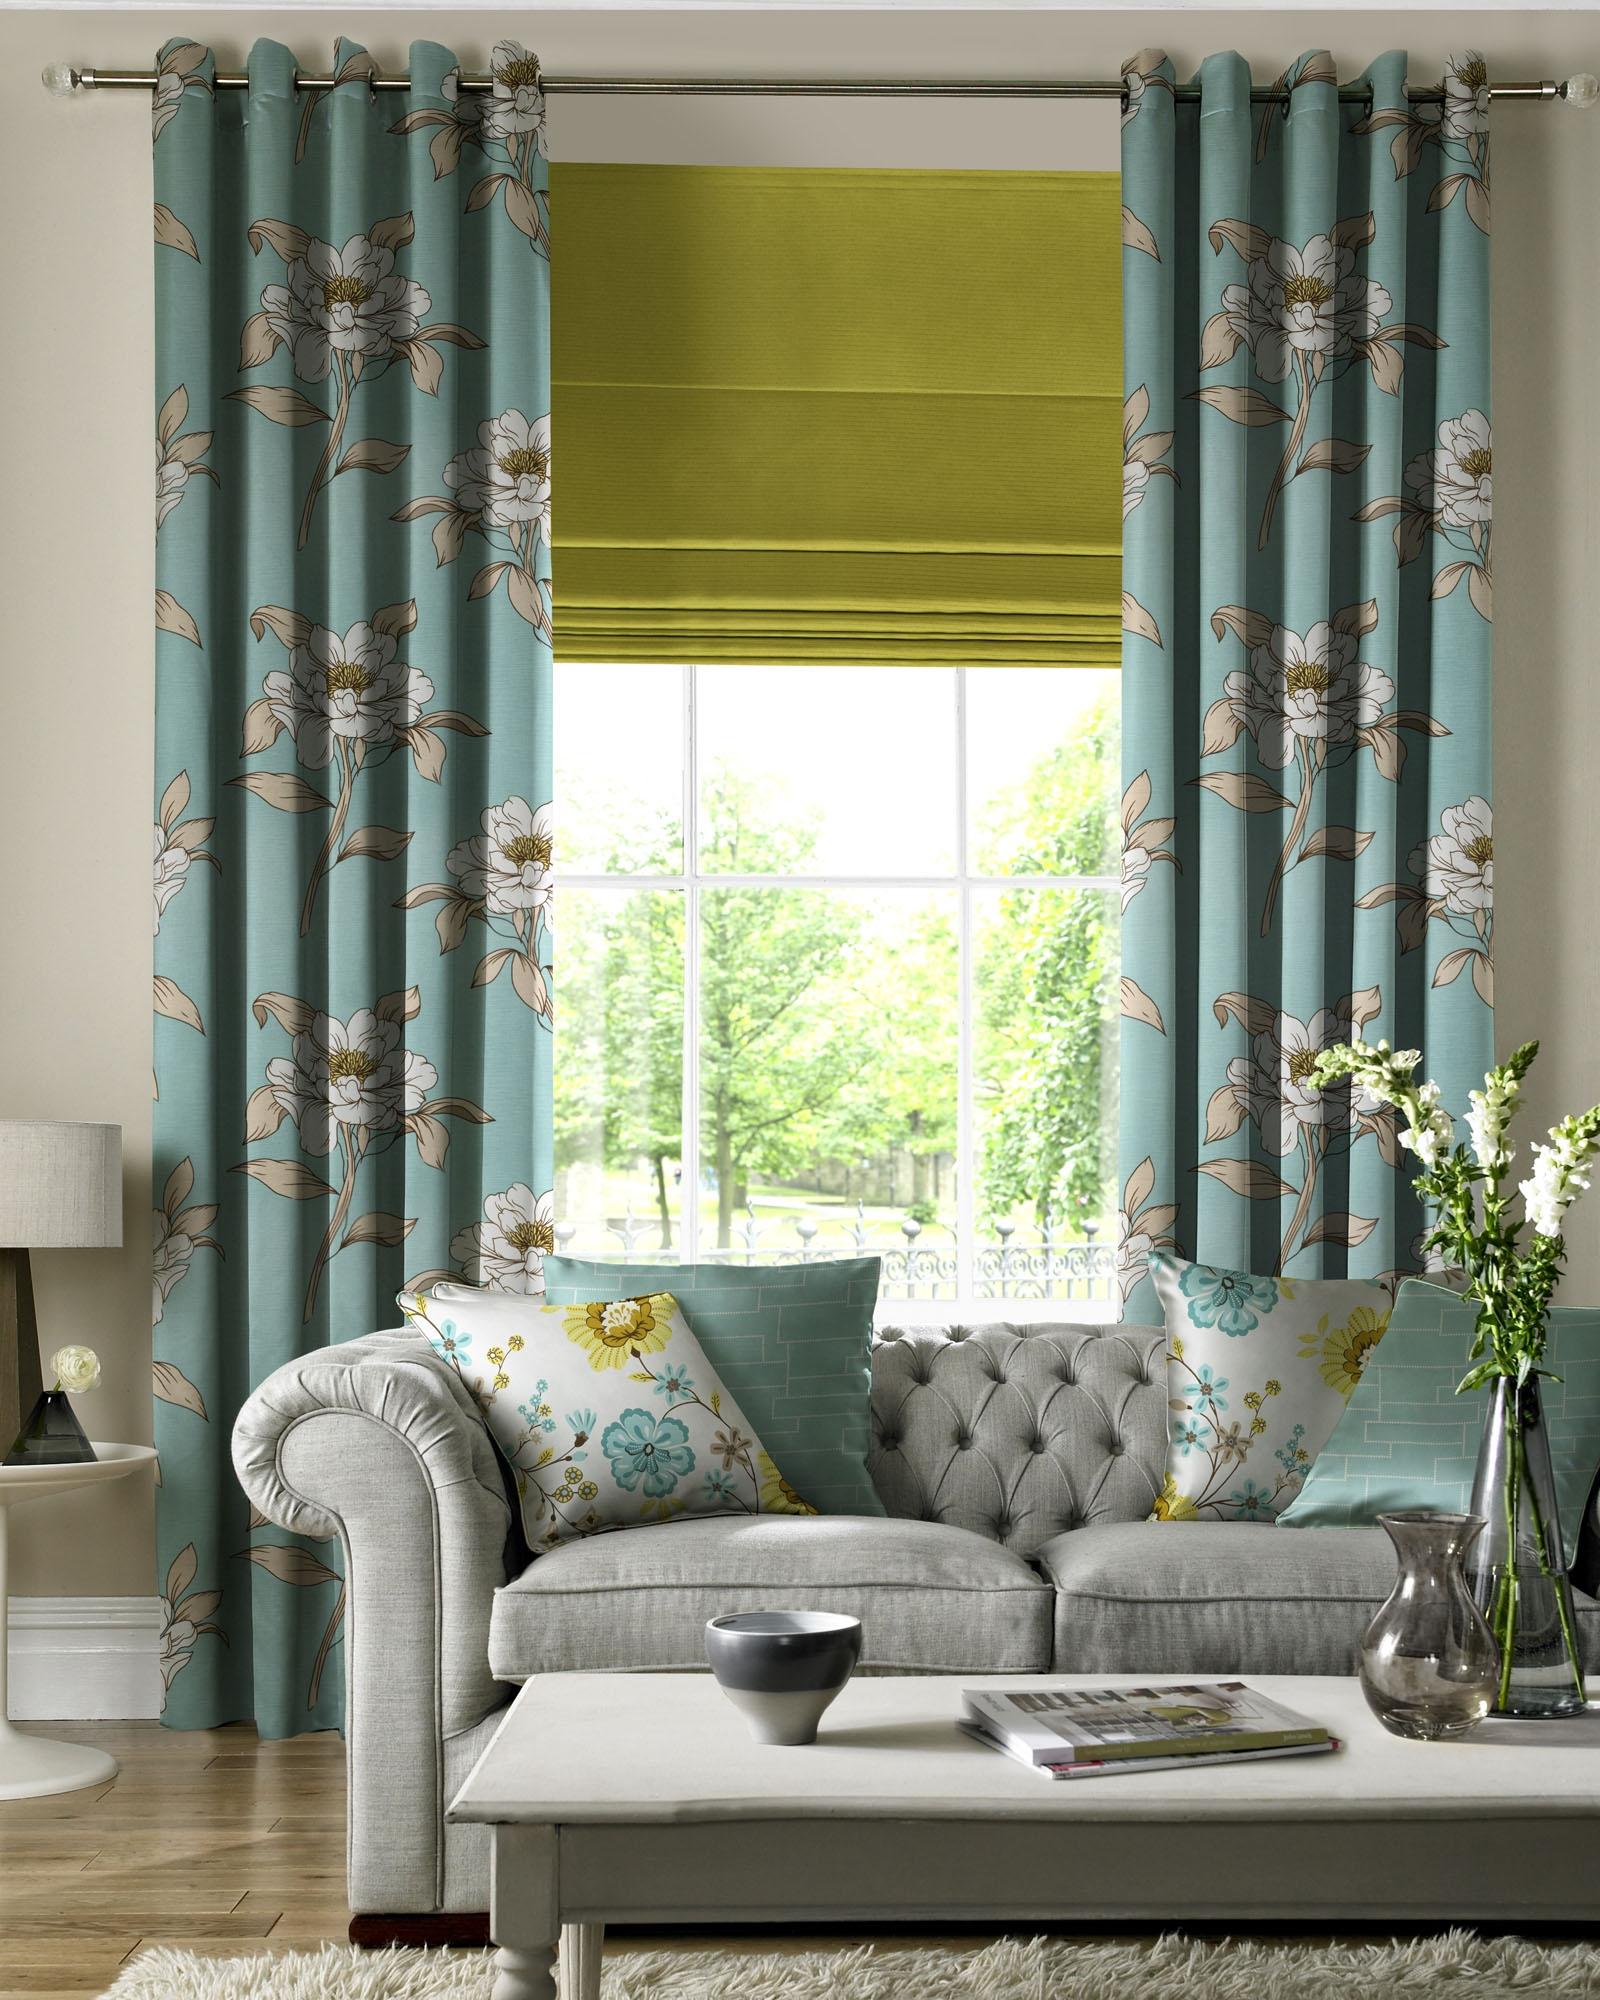 Blog In Roman Blinds With Blackout Lining (Image 3 of 15)